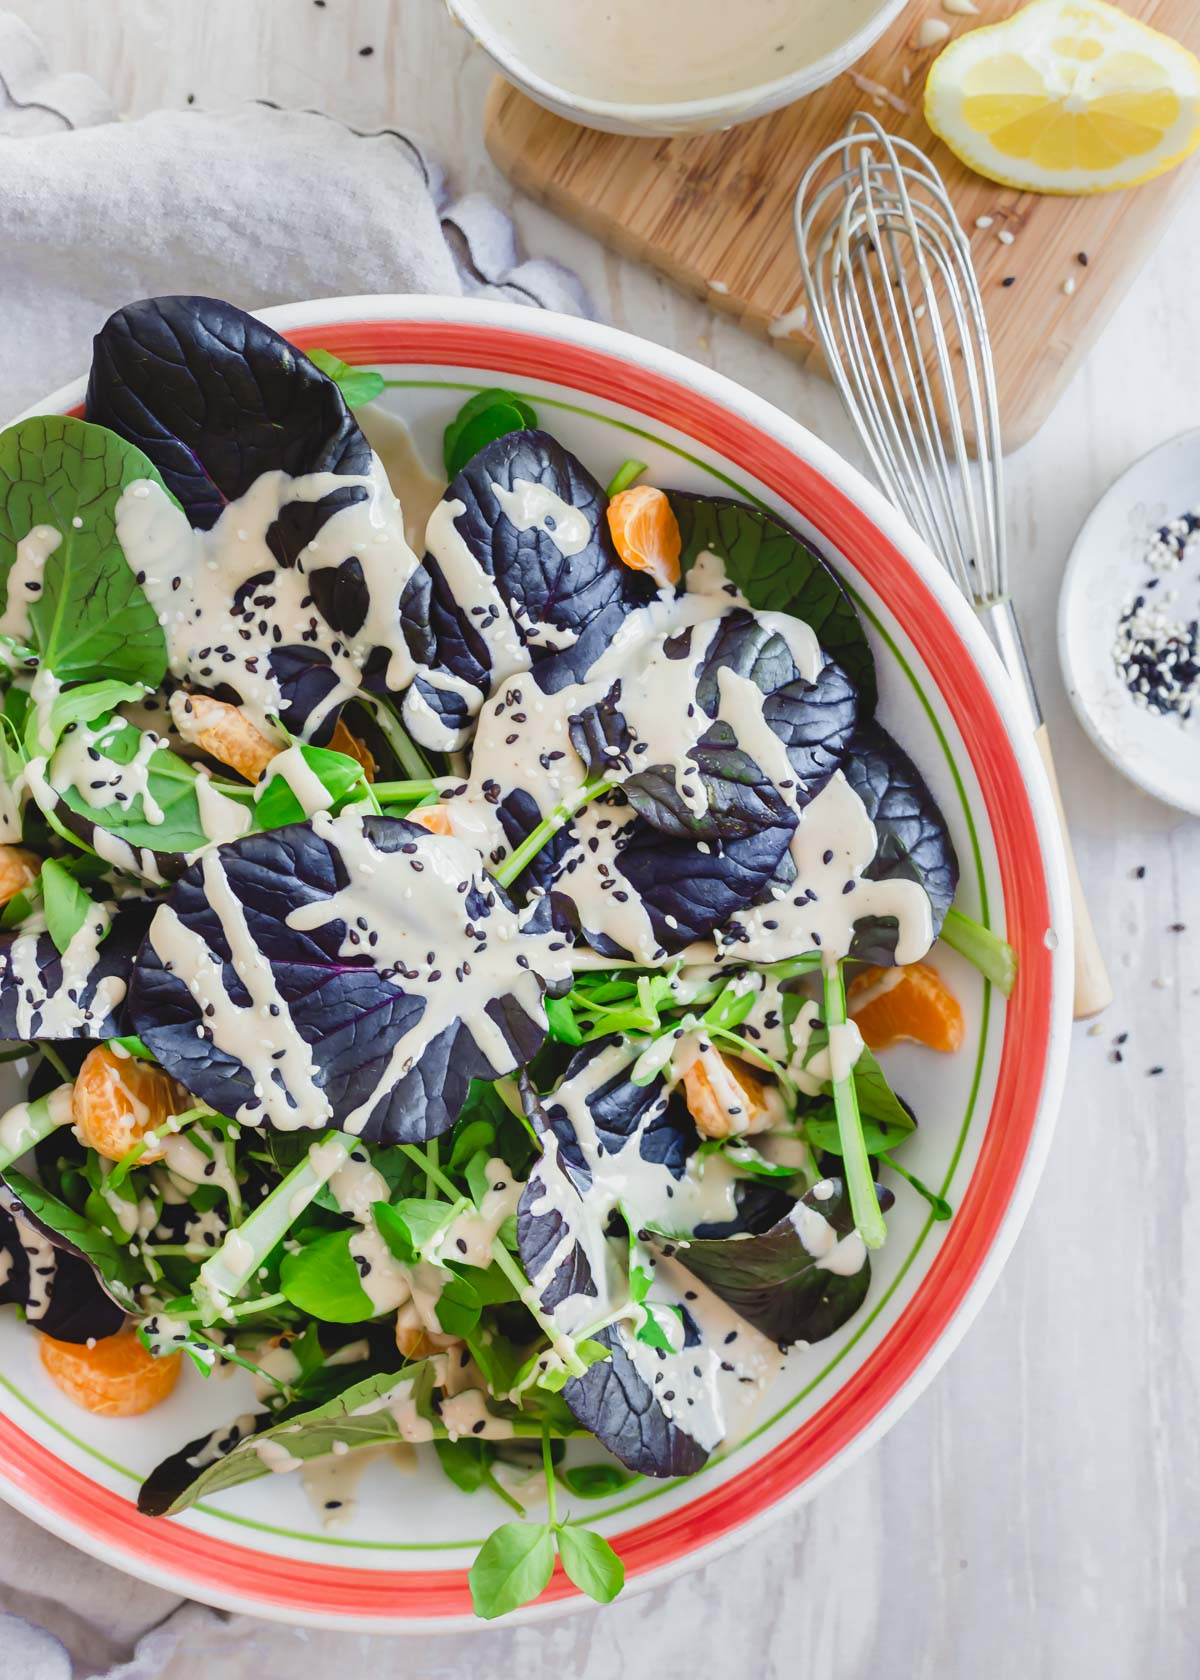 Purple tatsoi salad recipe in a bowl with pea shoots and clementines in a creamy tahini dressing.